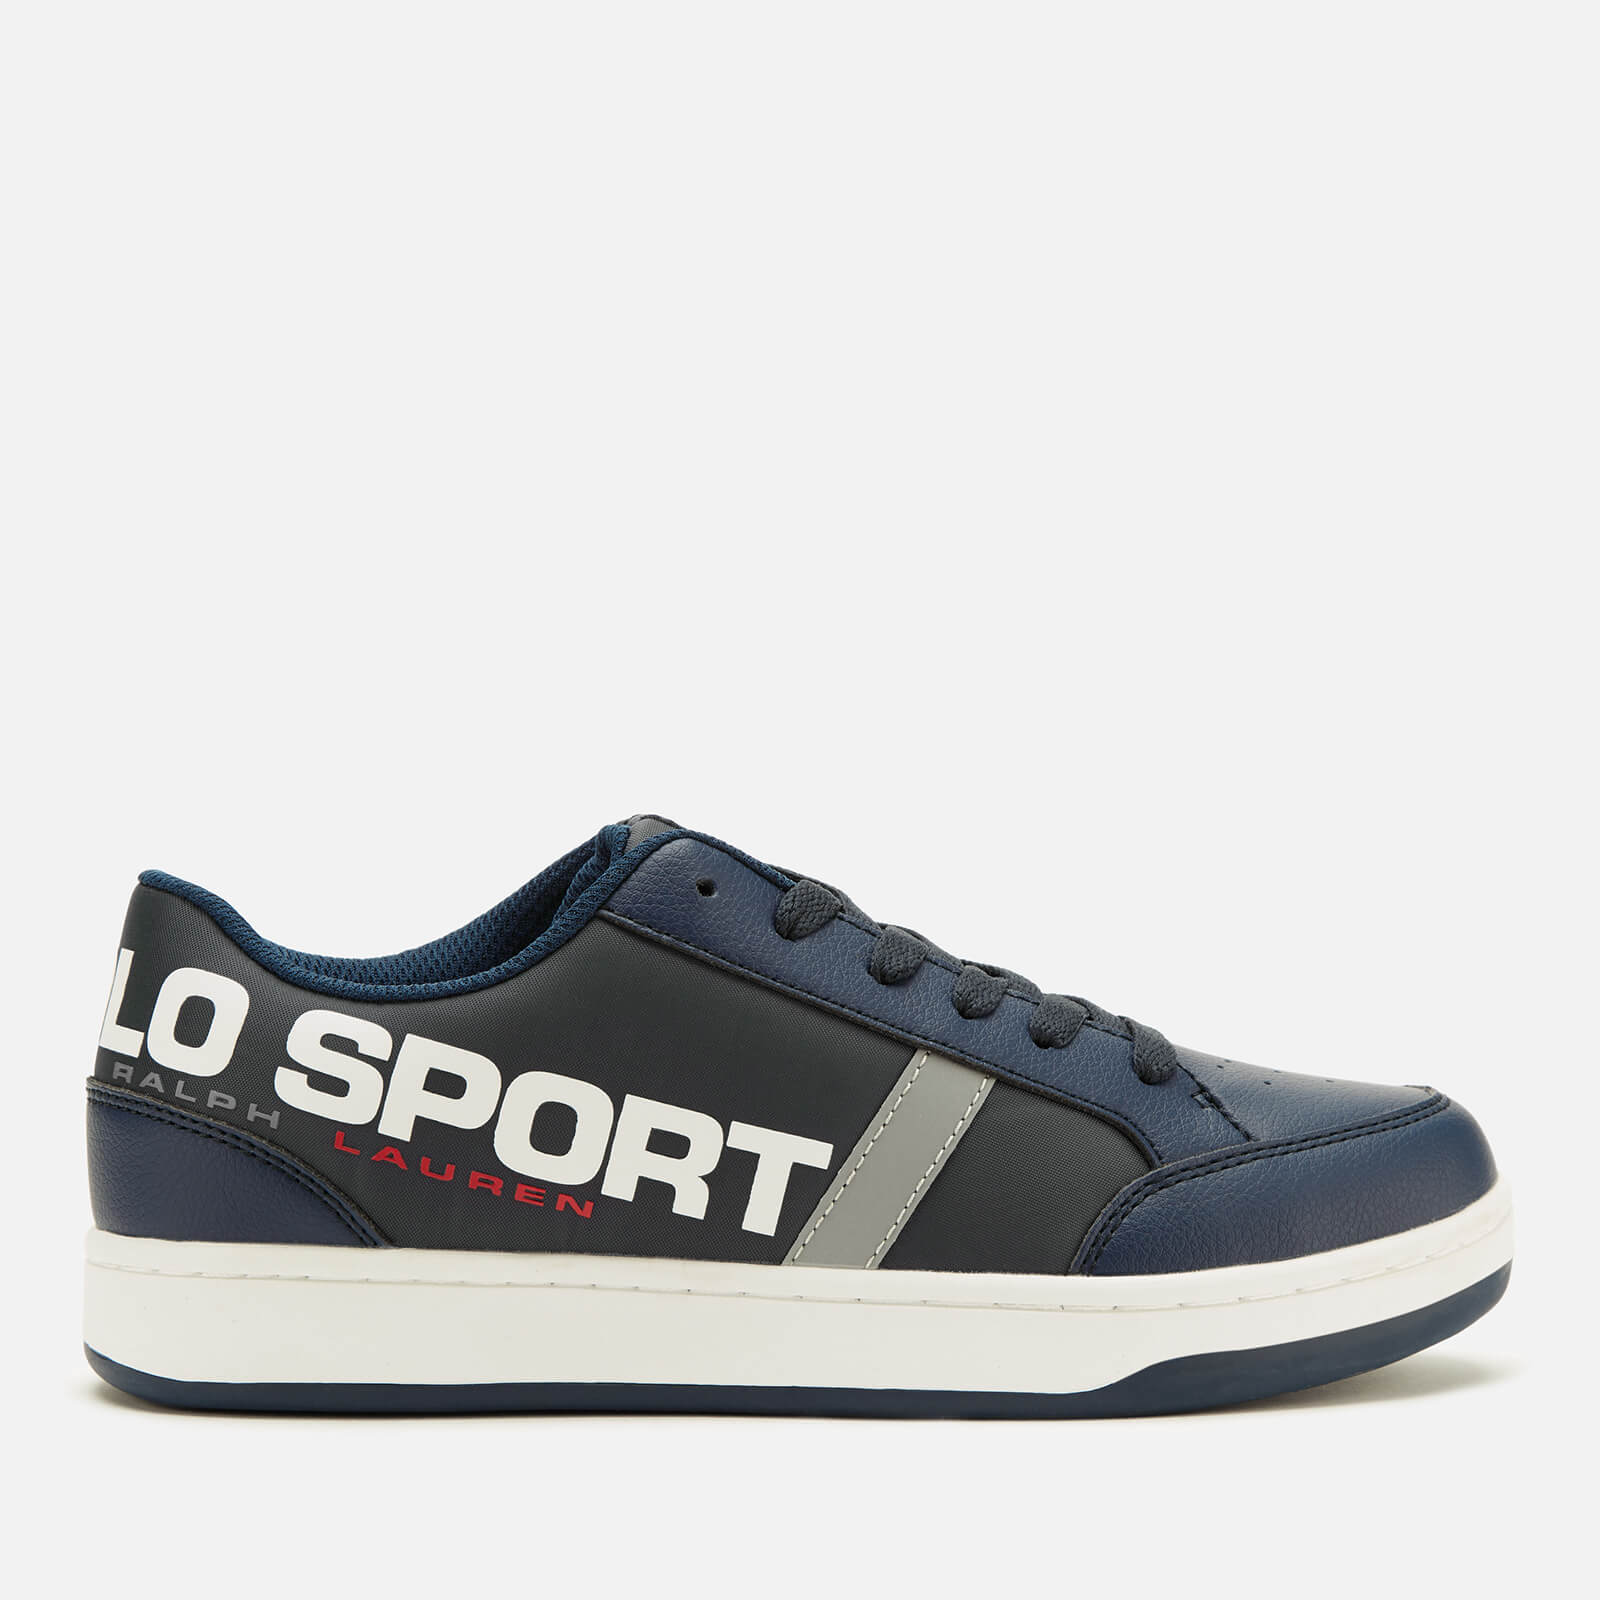 fresh styles new concept temperament shoes Polo Ralph Lauren Kids' Belden Polo Sport Low Top Trainers - Navy ...